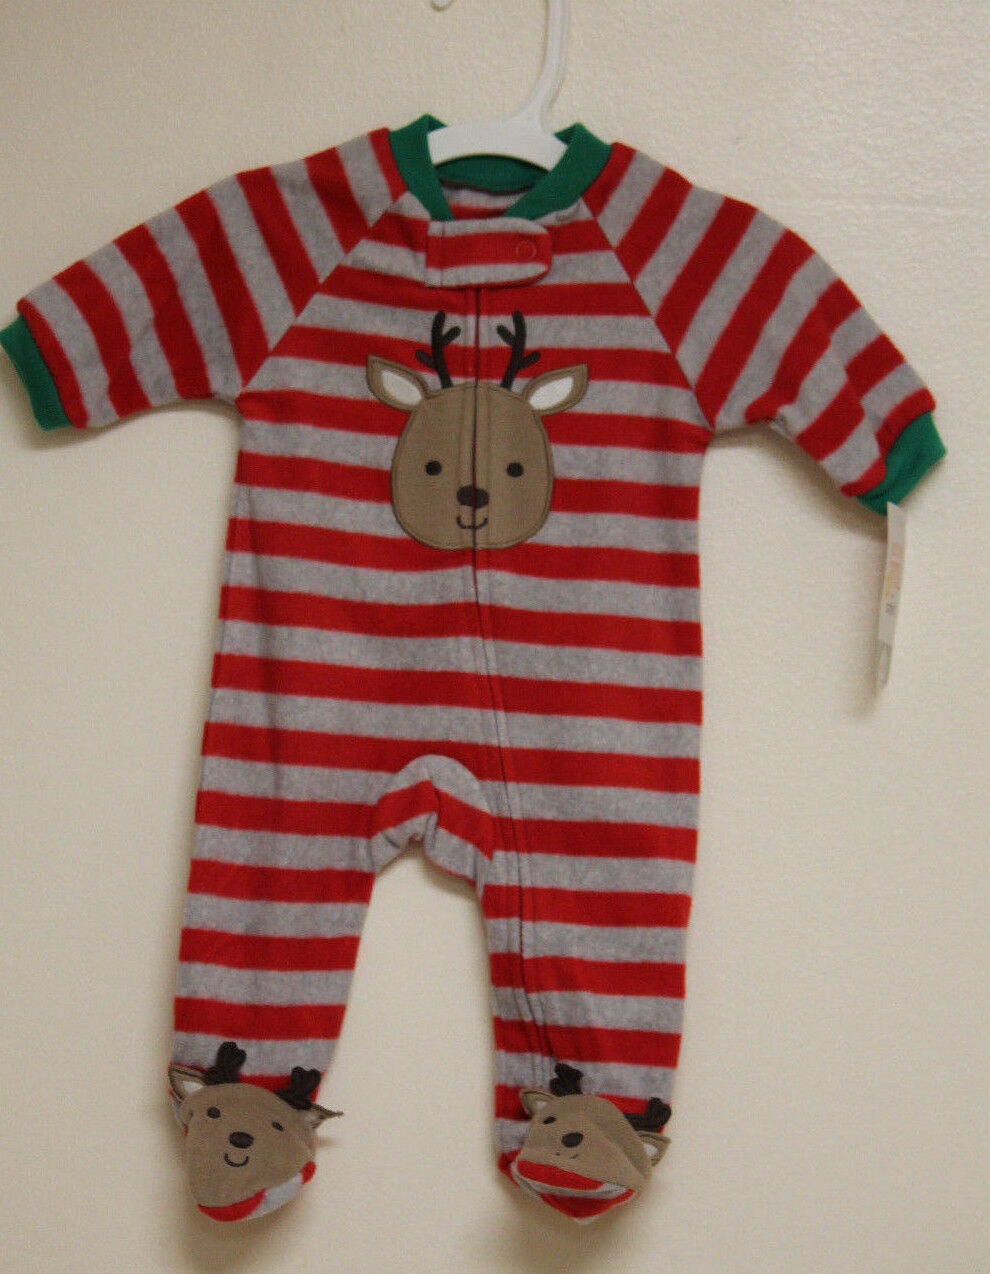 New! Just One You by Carters Fleece Sleeper Striped w/ Reindeer Red/Gray - $8.99